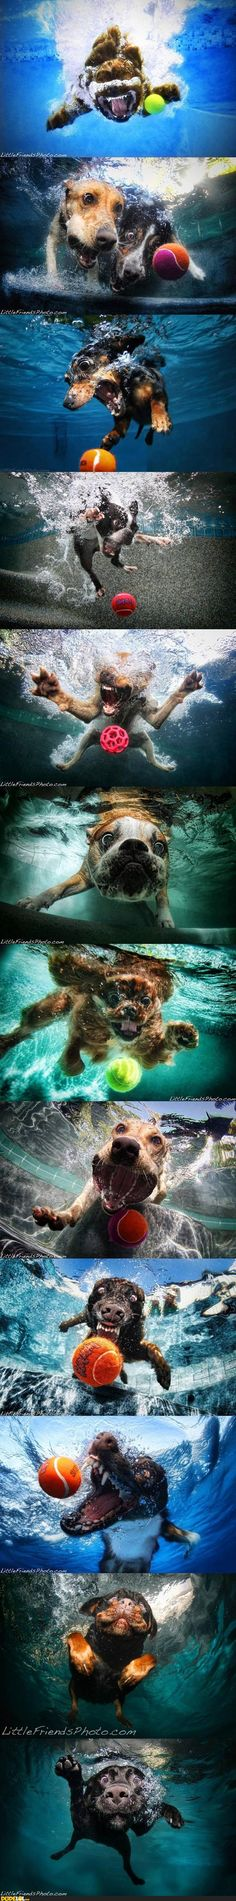 Dogs diving Underwater